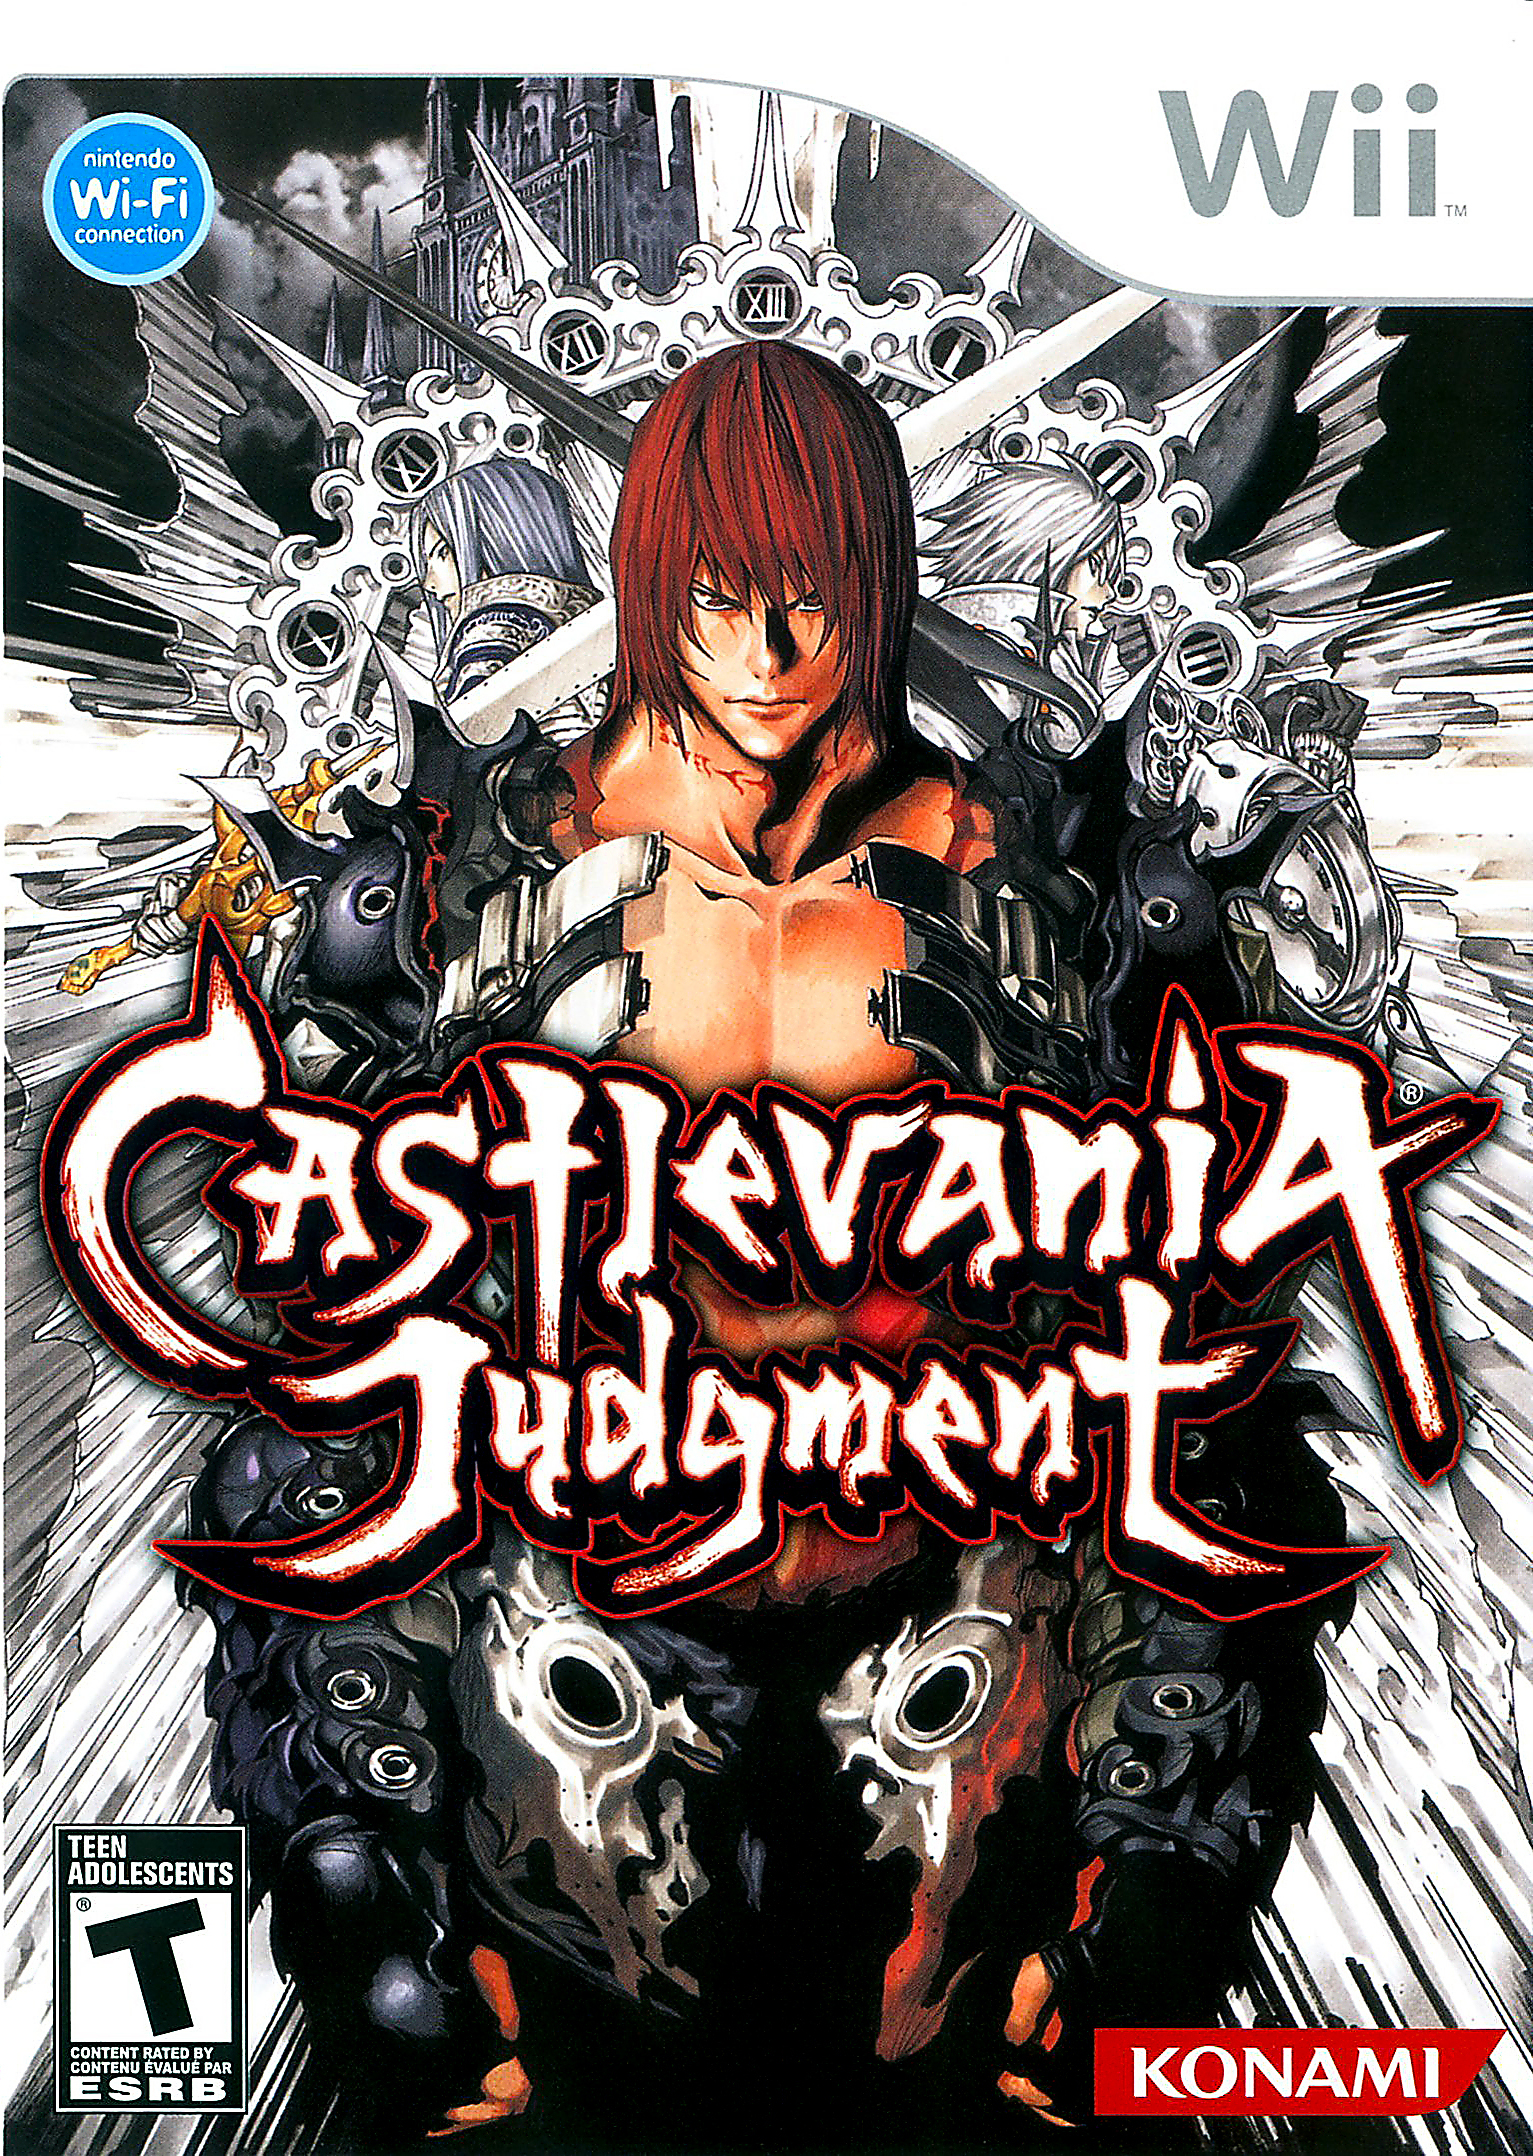 Castlevania Judgment/Wii